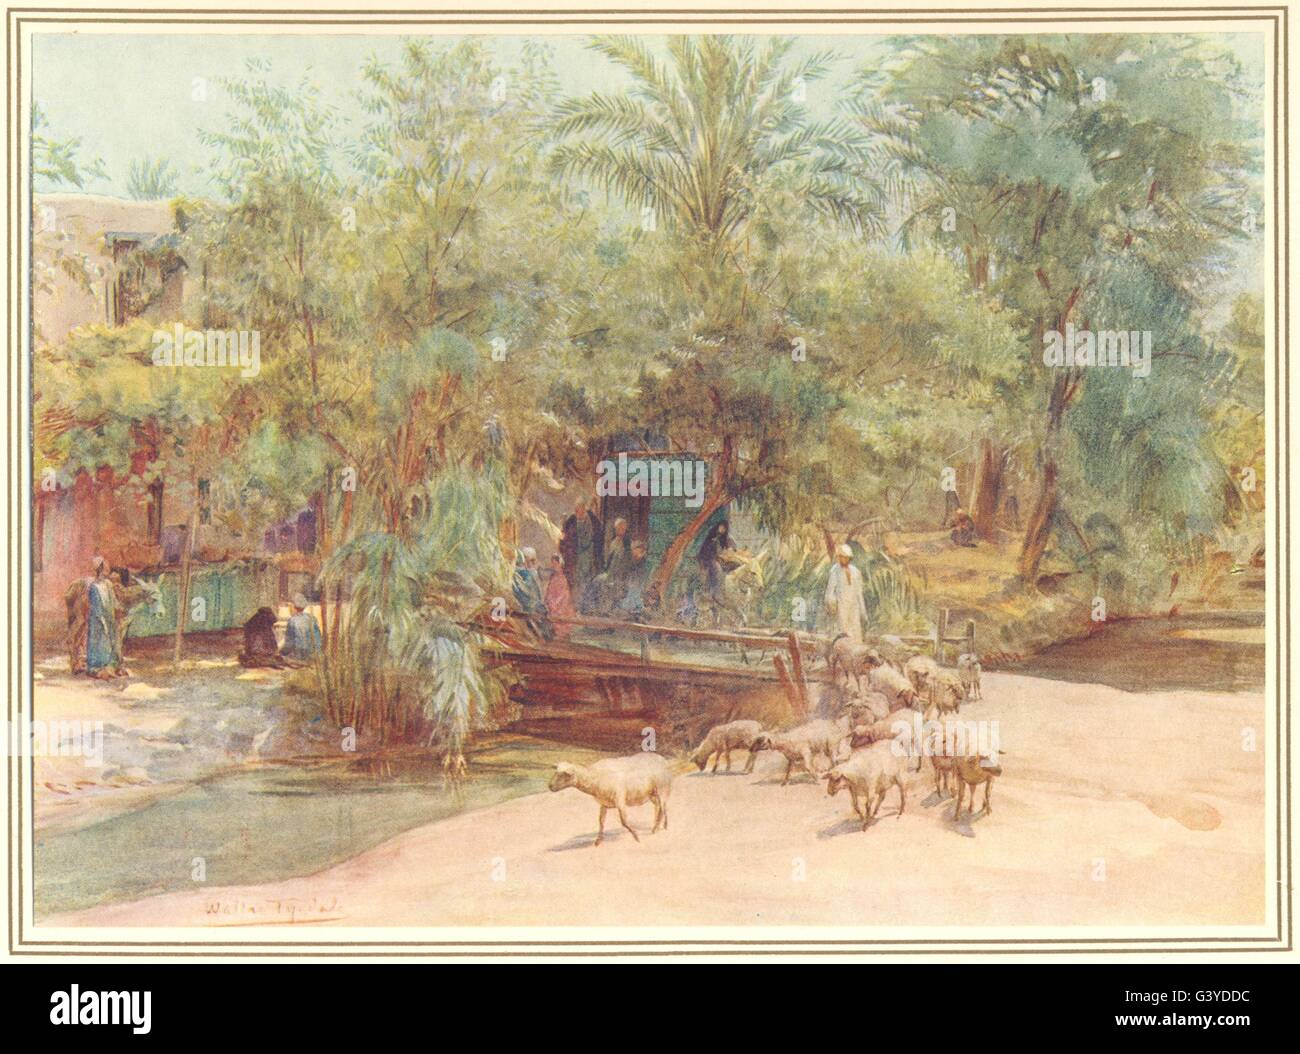 EGYPT: The village of Marg, antique print 1912 - Stock Image